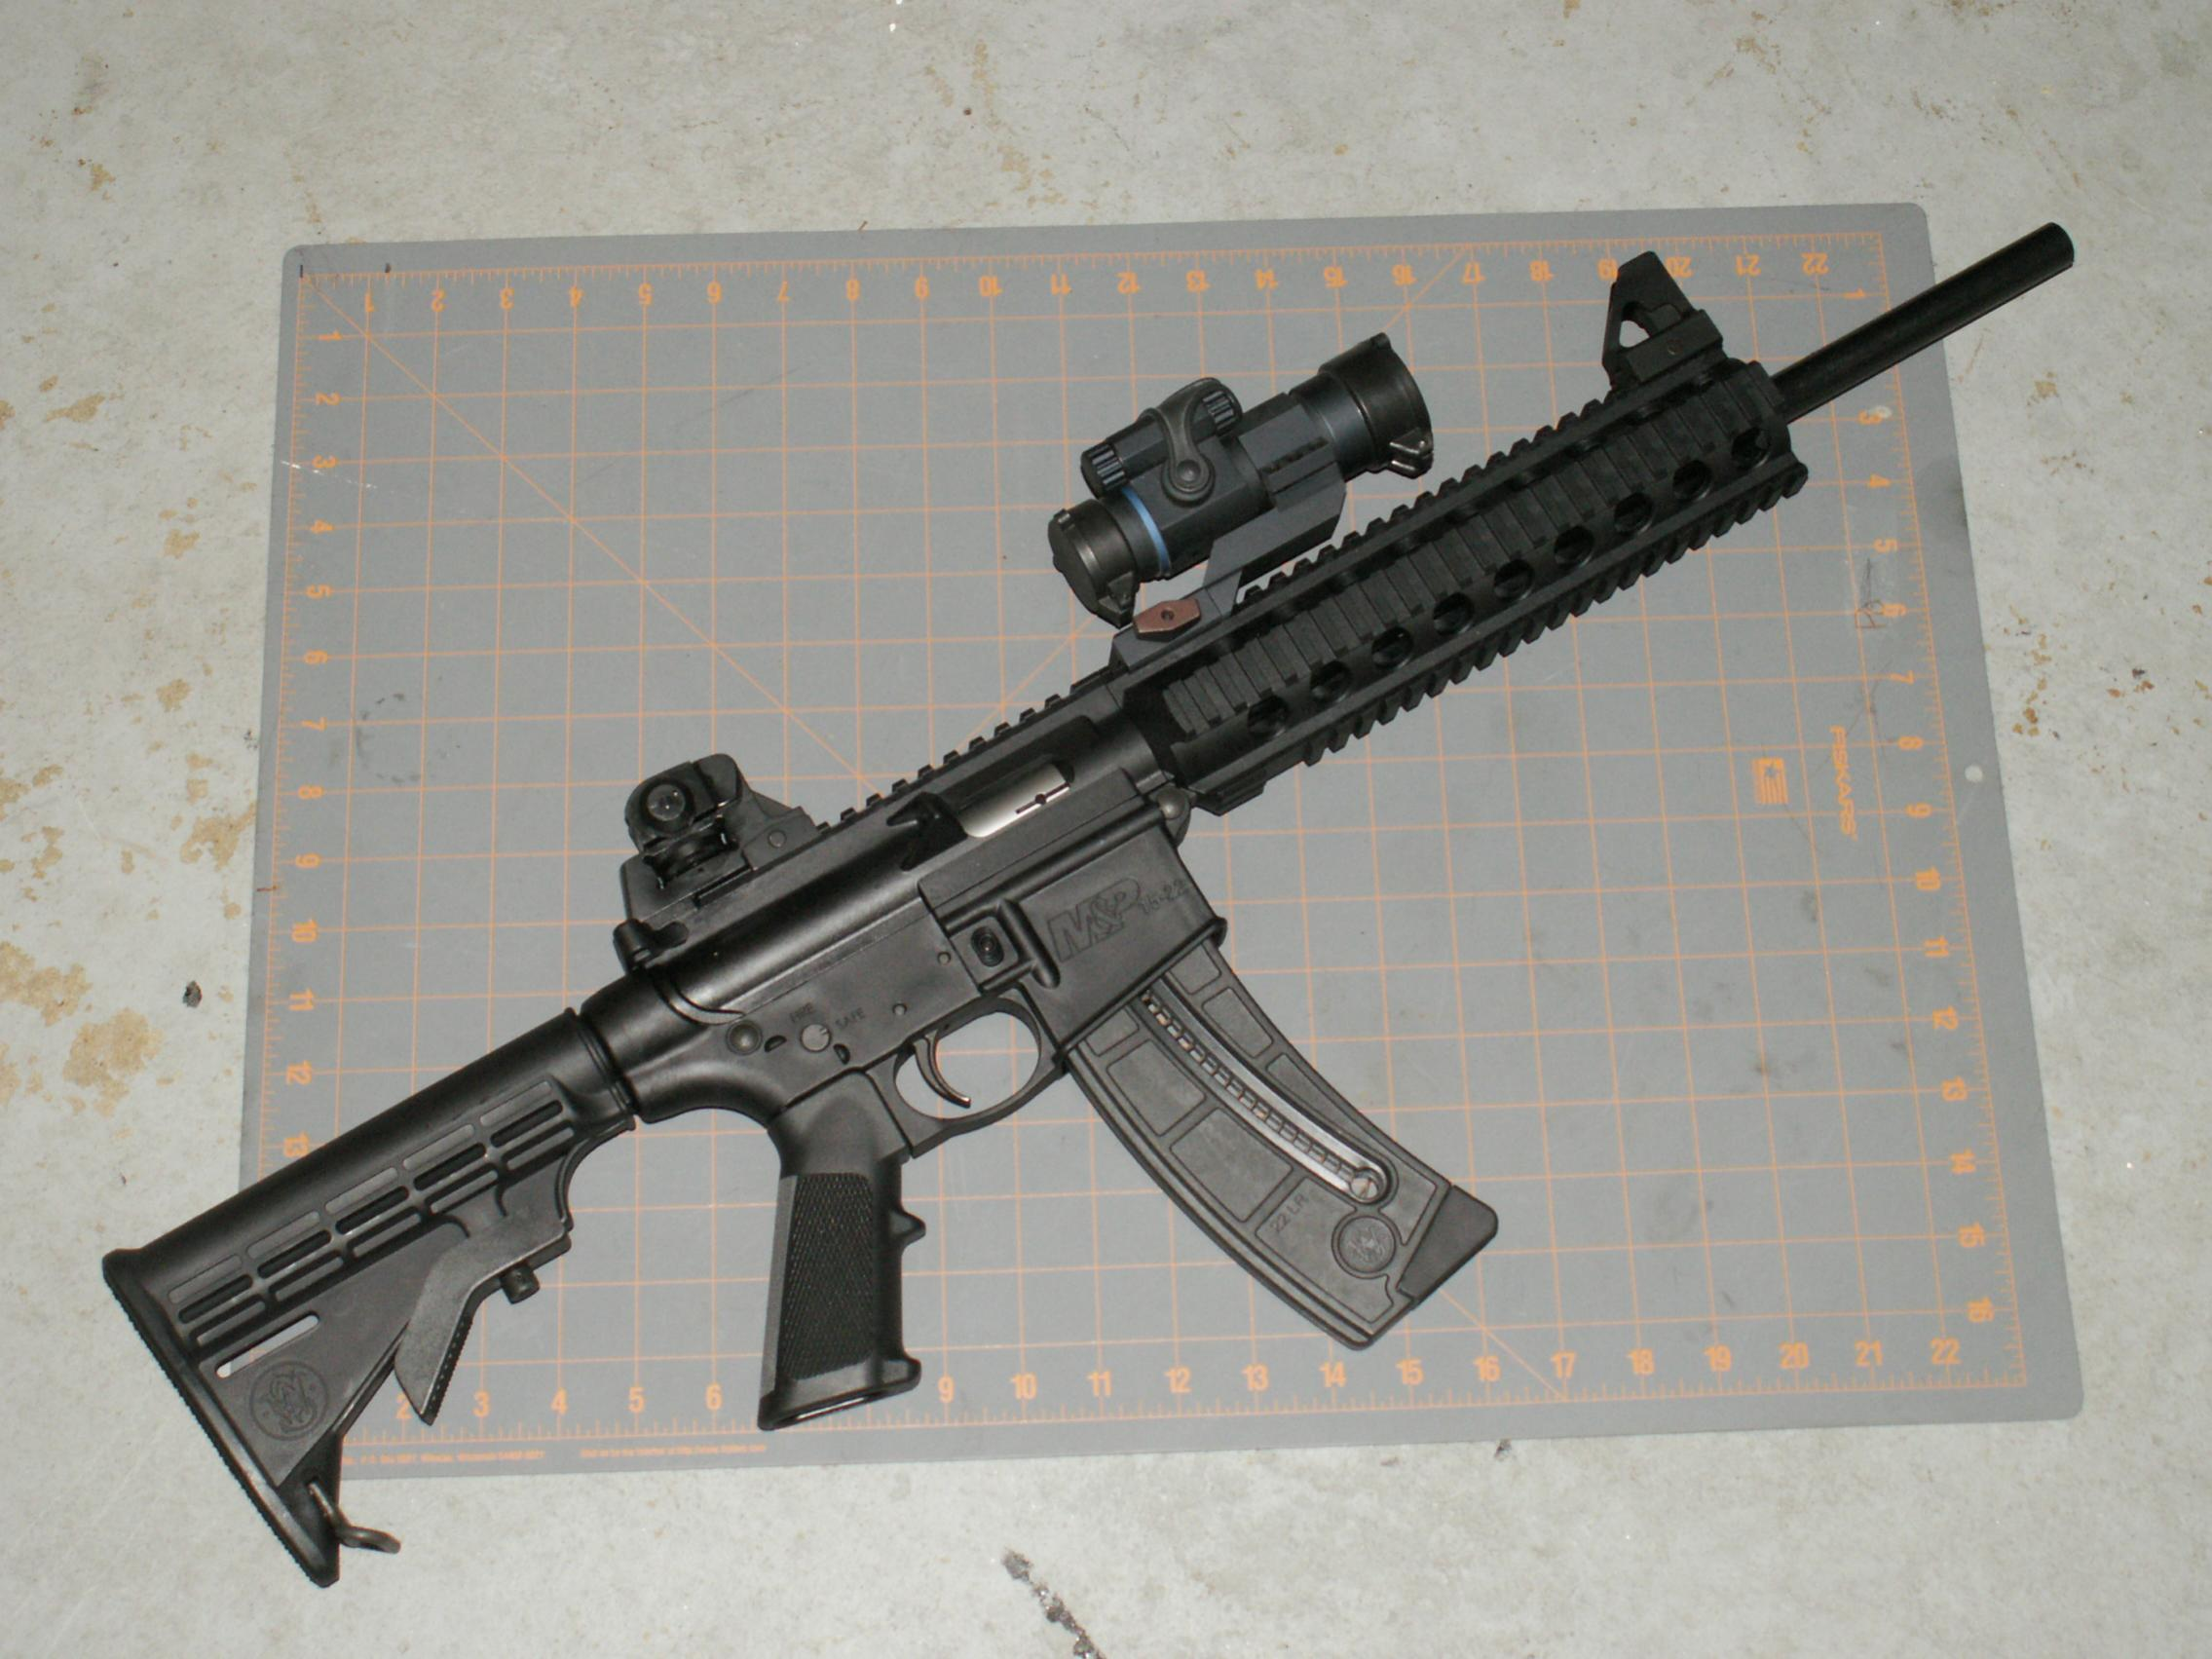 New 22 carbine !!-ar-15-22-111.jpg